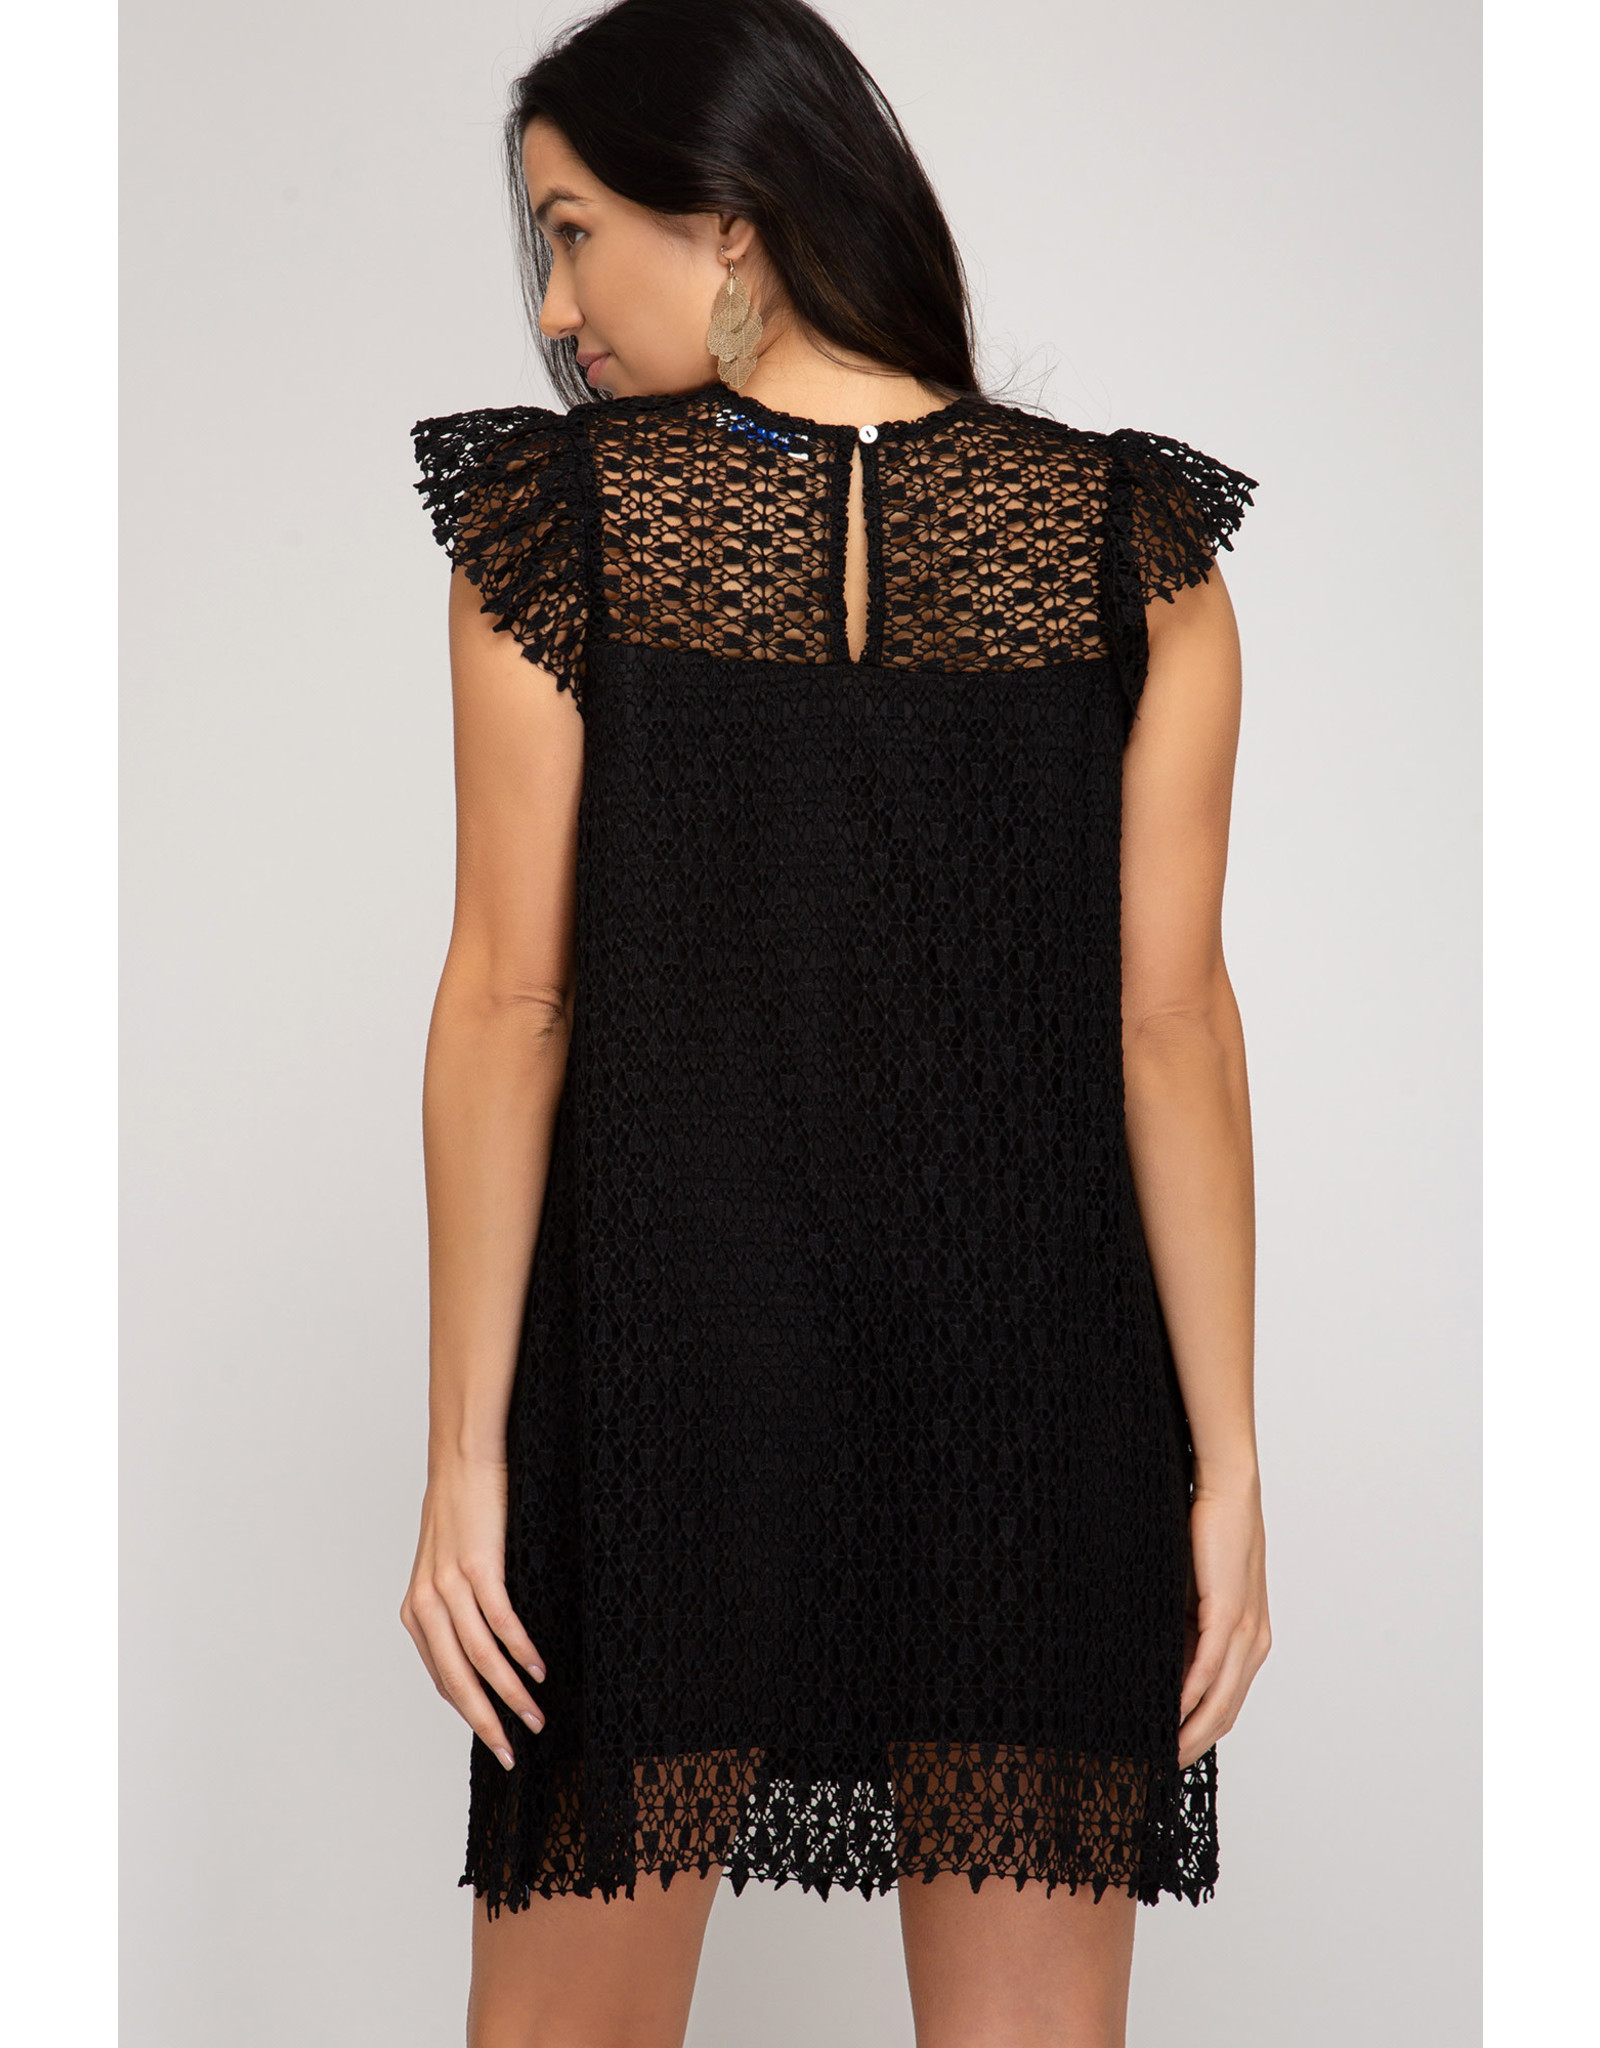 The Ritzy Gypsy MANDY Black Lace Dress